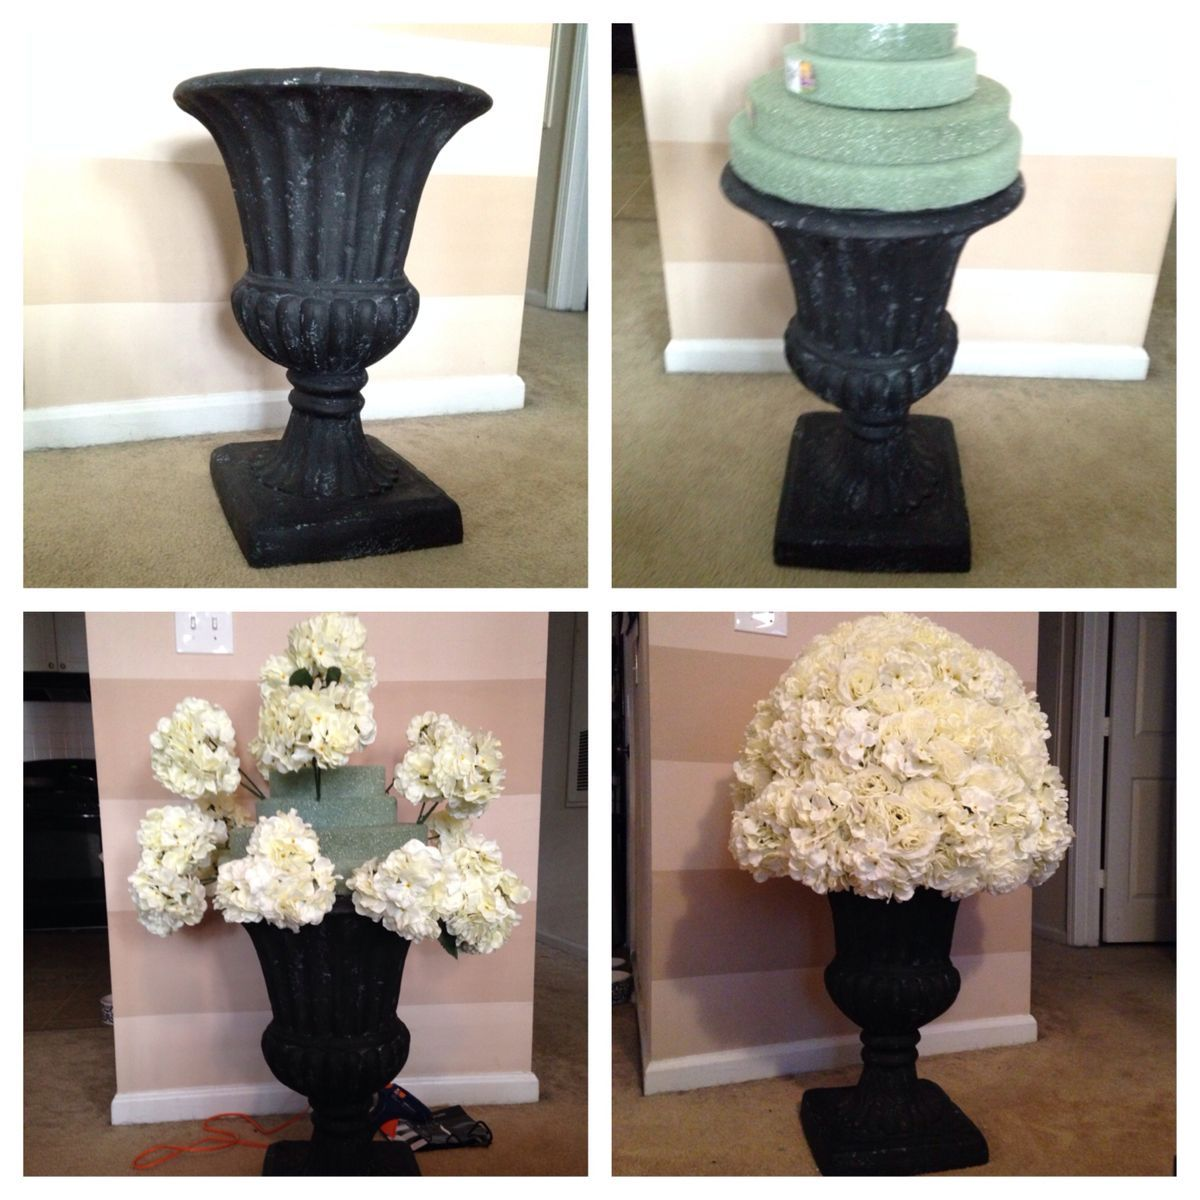 Floral Urns For Weddings: Pin By Jamie Serrano On DYI DECOR In 2019